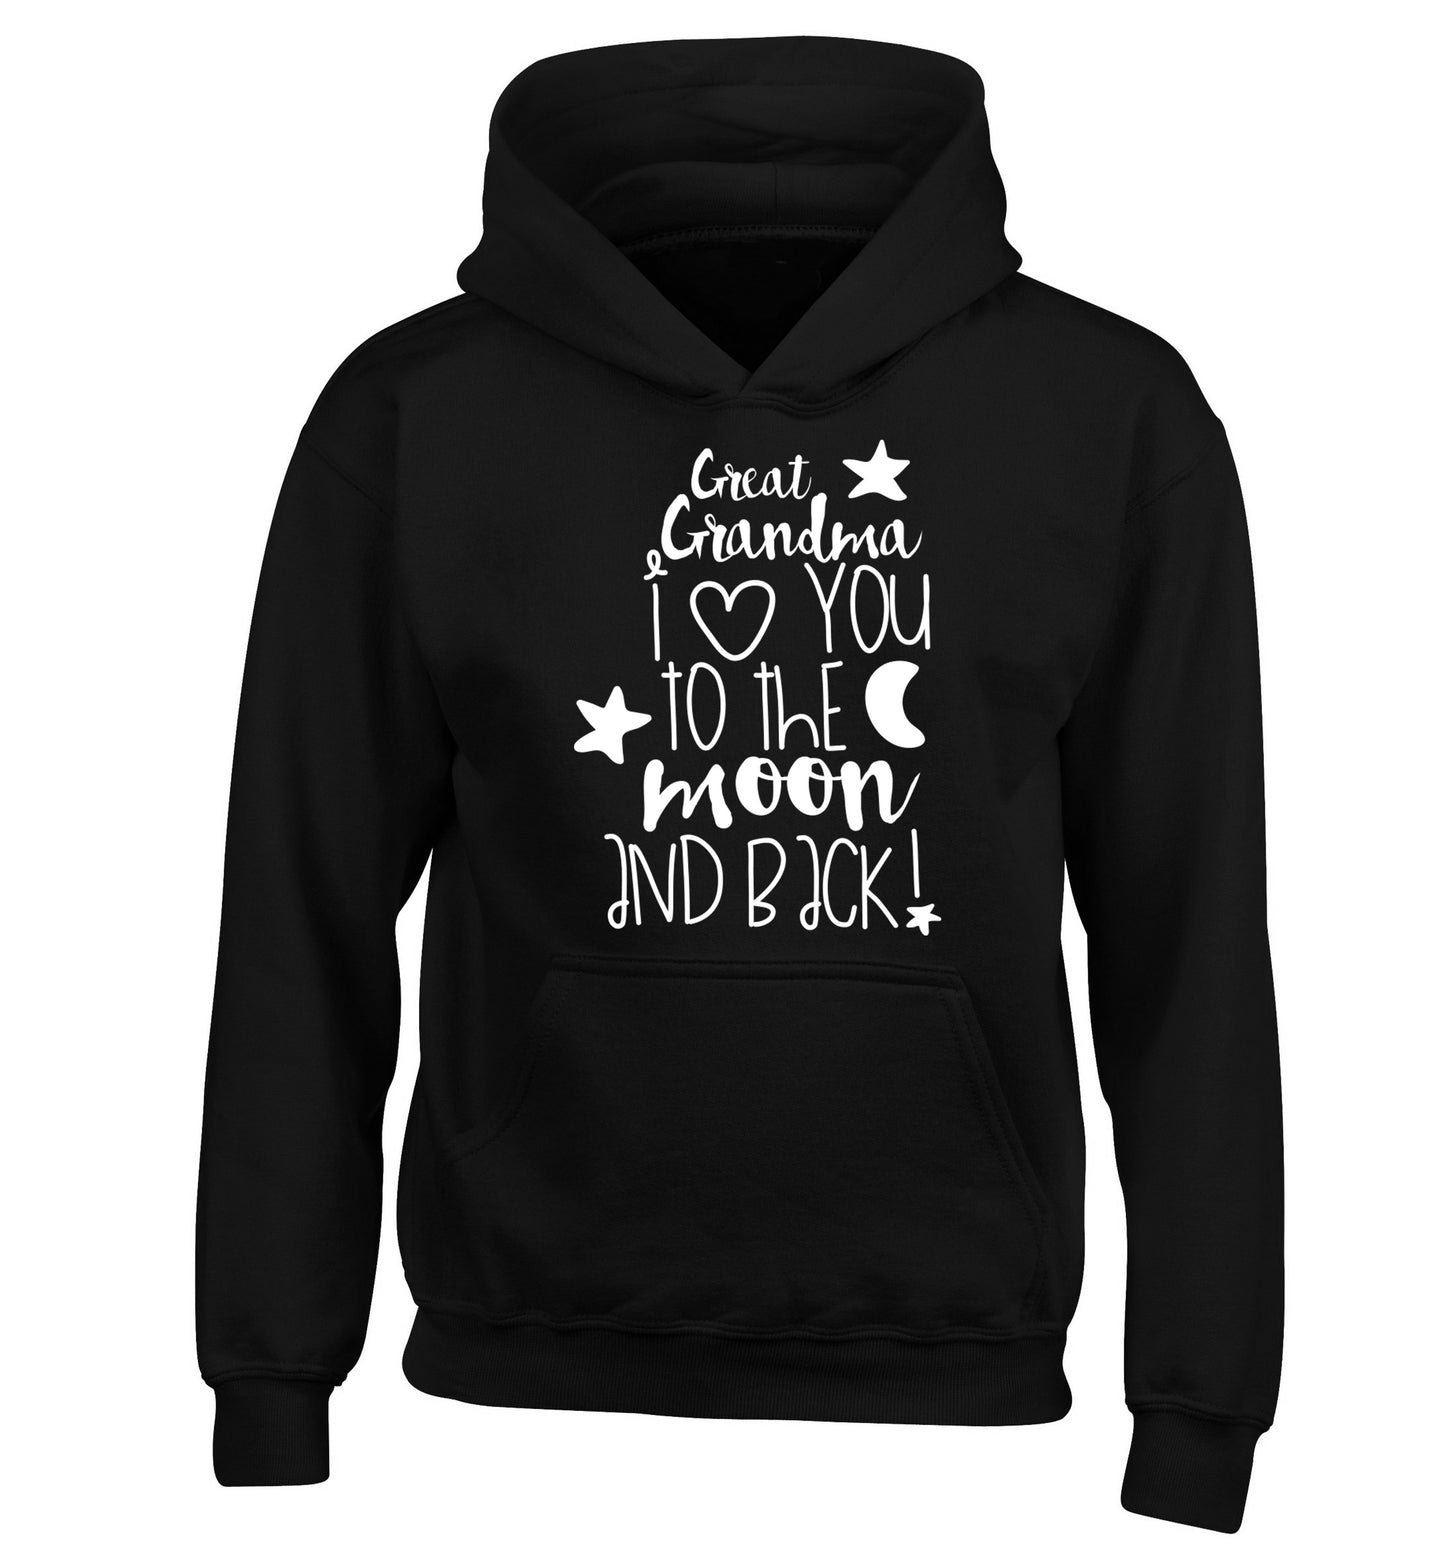 Great Grandma I love you to the moon and back children's black hoodie 12-14 Years